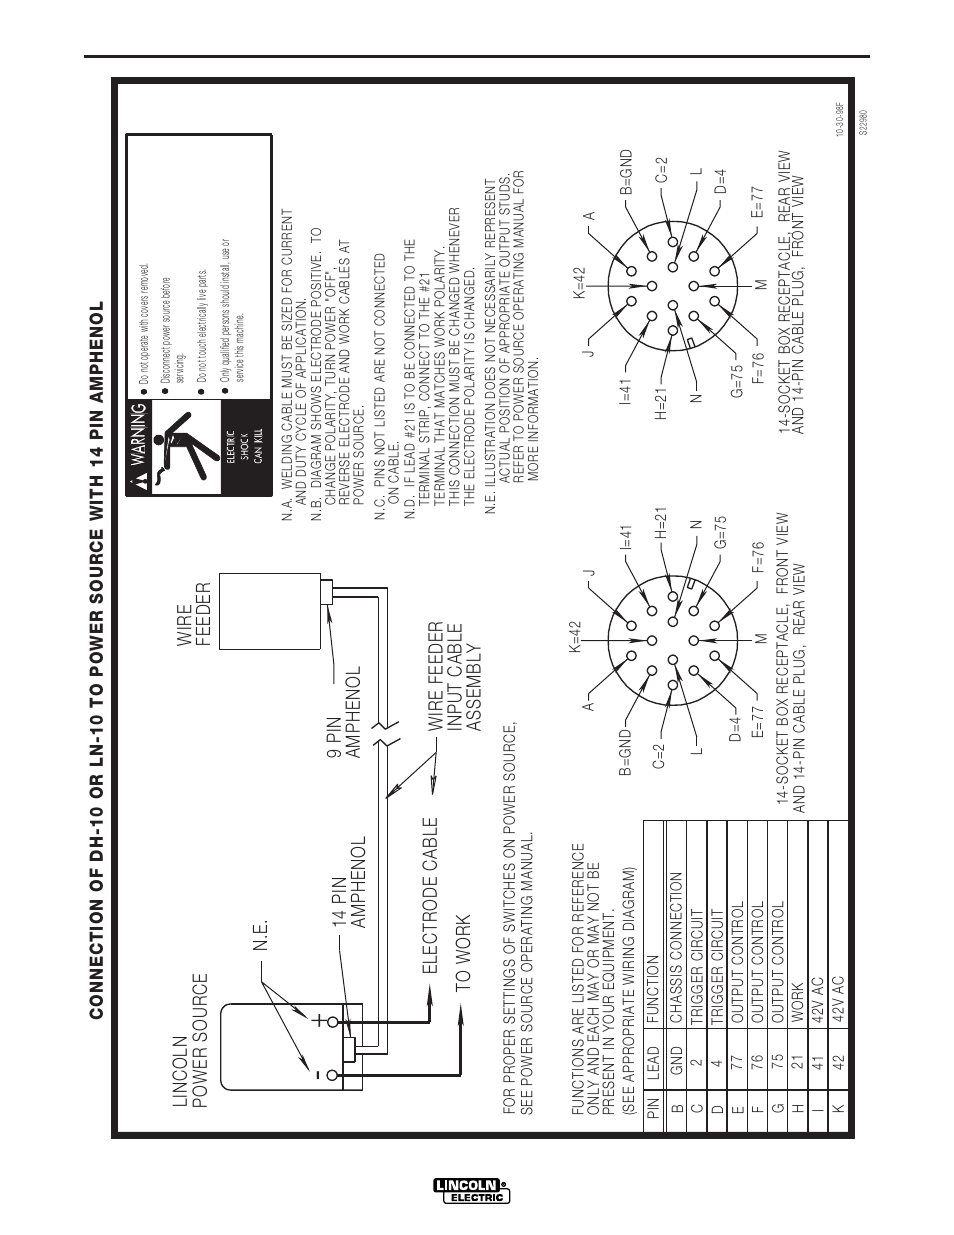 medium resolution of sch mas dc 600 lincoln electric im642 idealarc dc 600 manuel d utilisation page 49 56